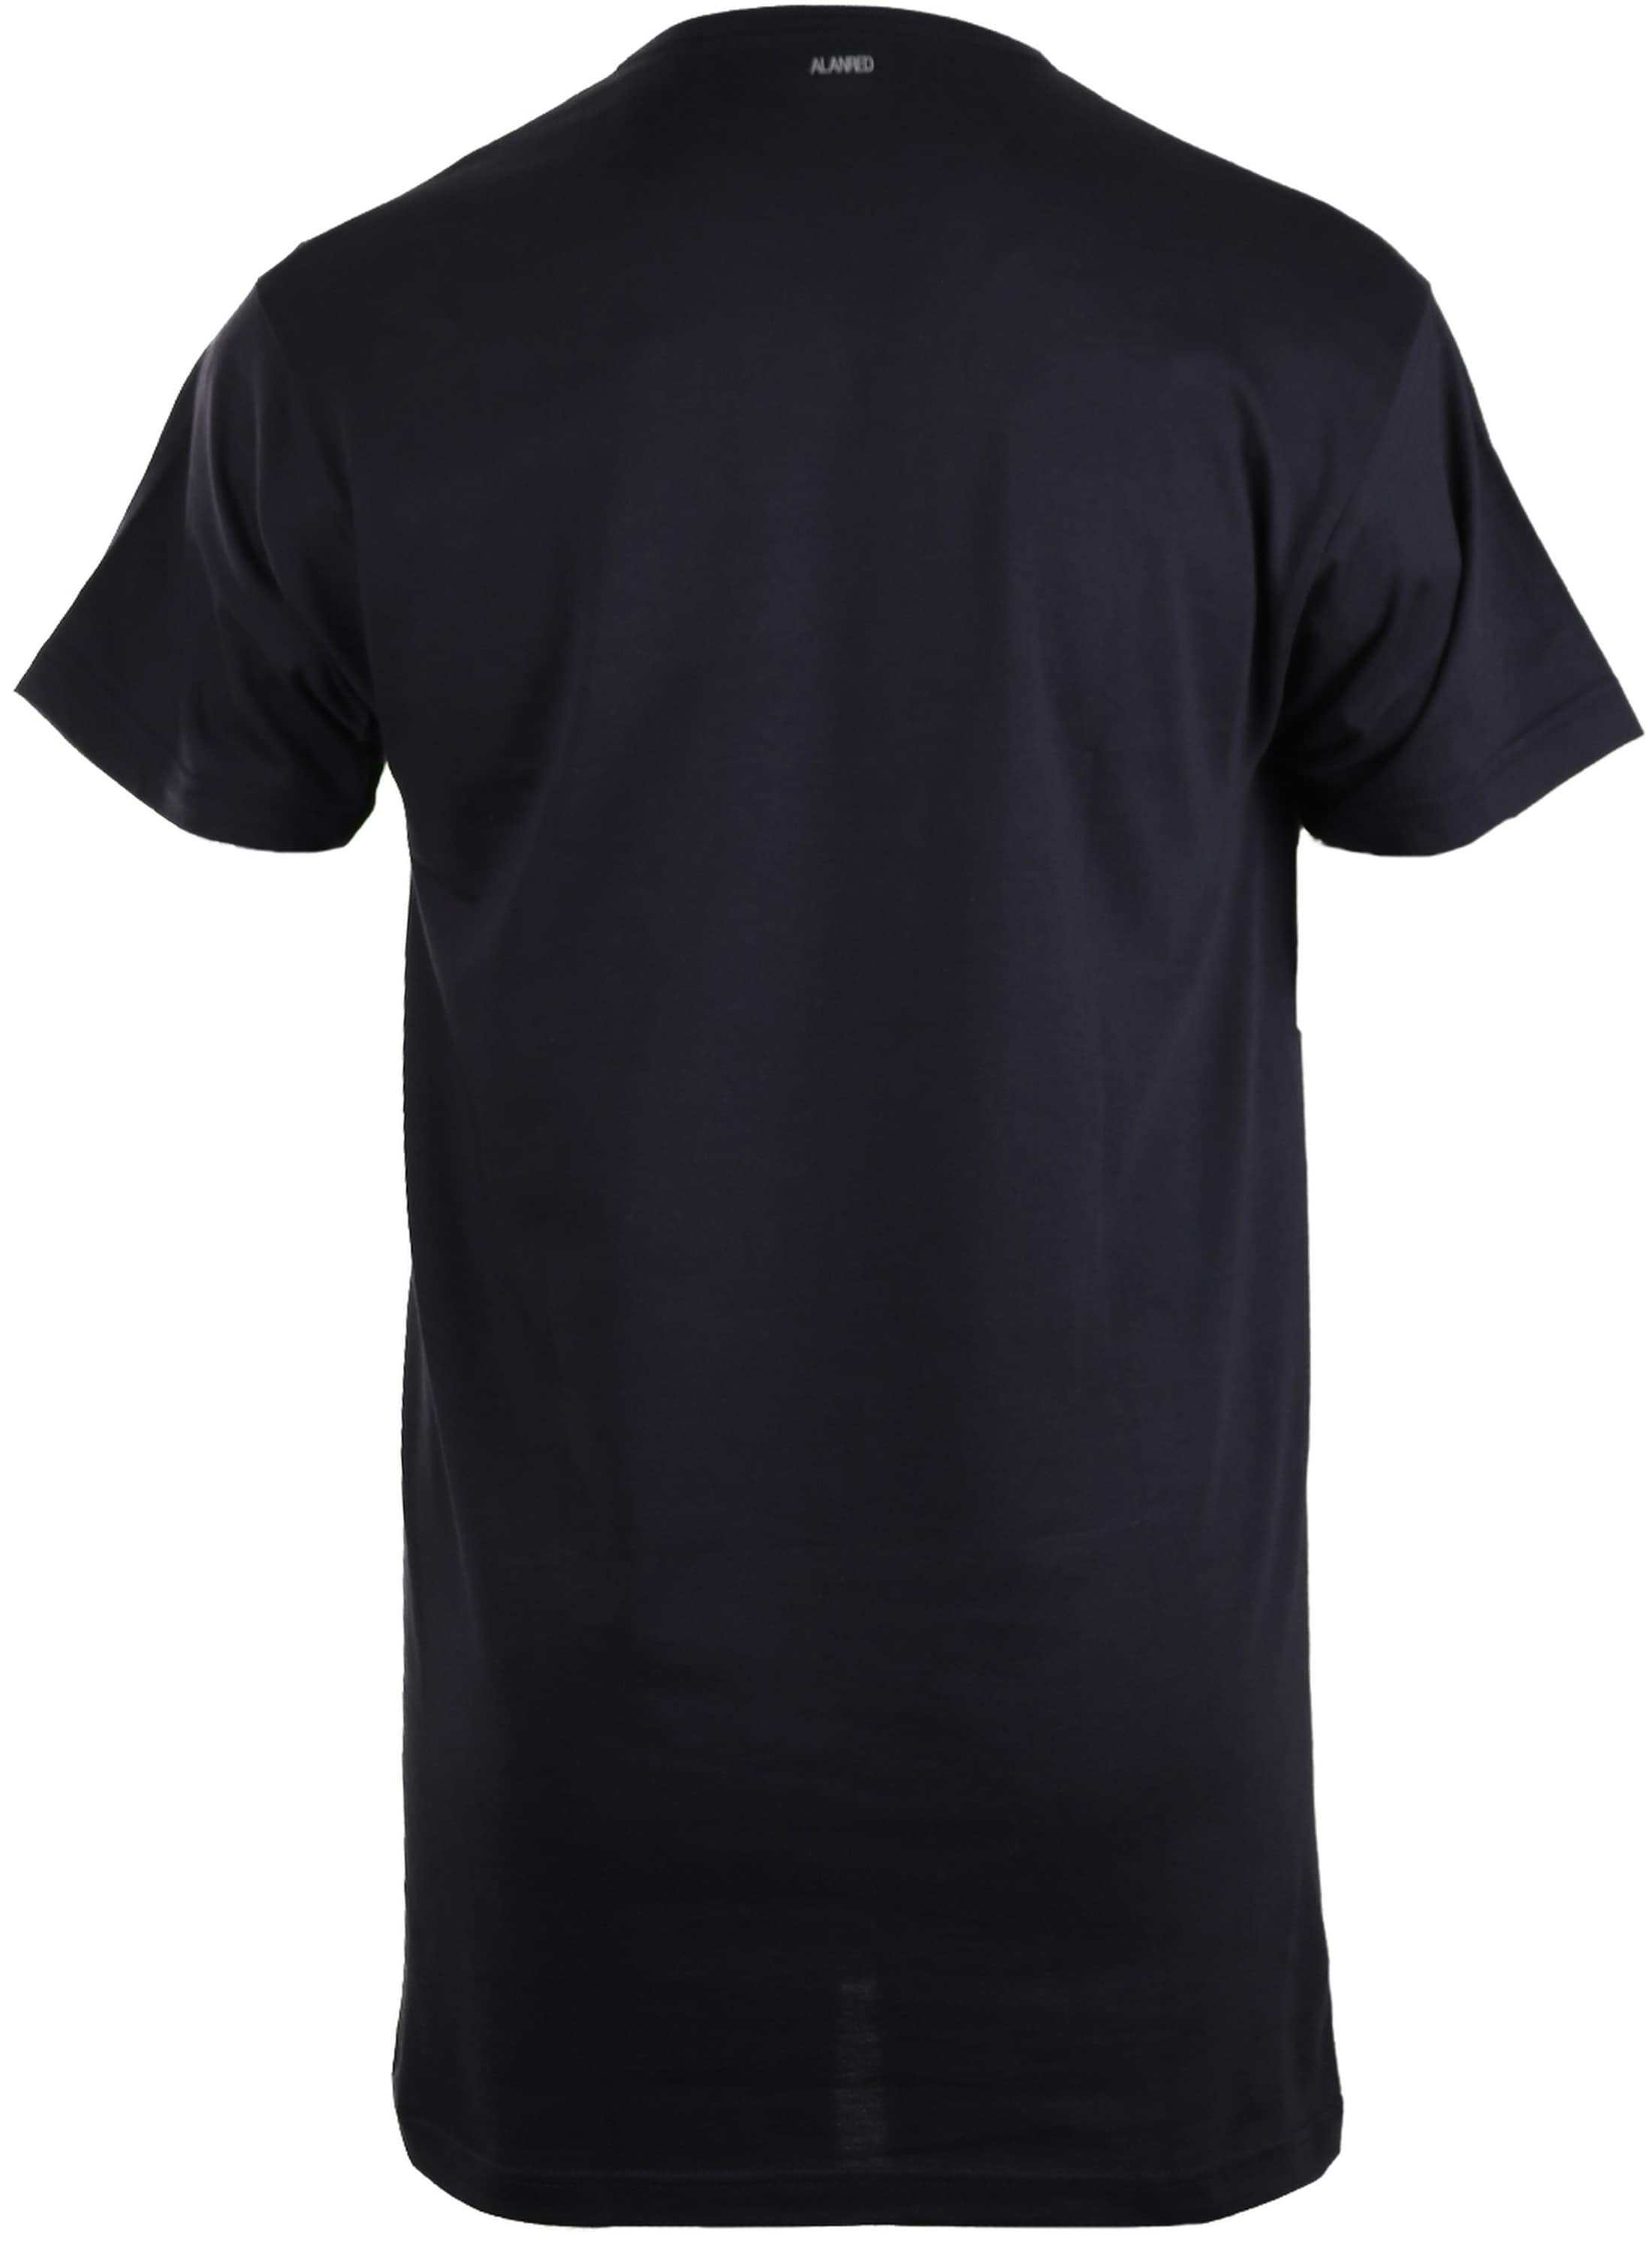 Alan Red Vermont Extra Lange T-Shirts Navy (2Pack) foto 2